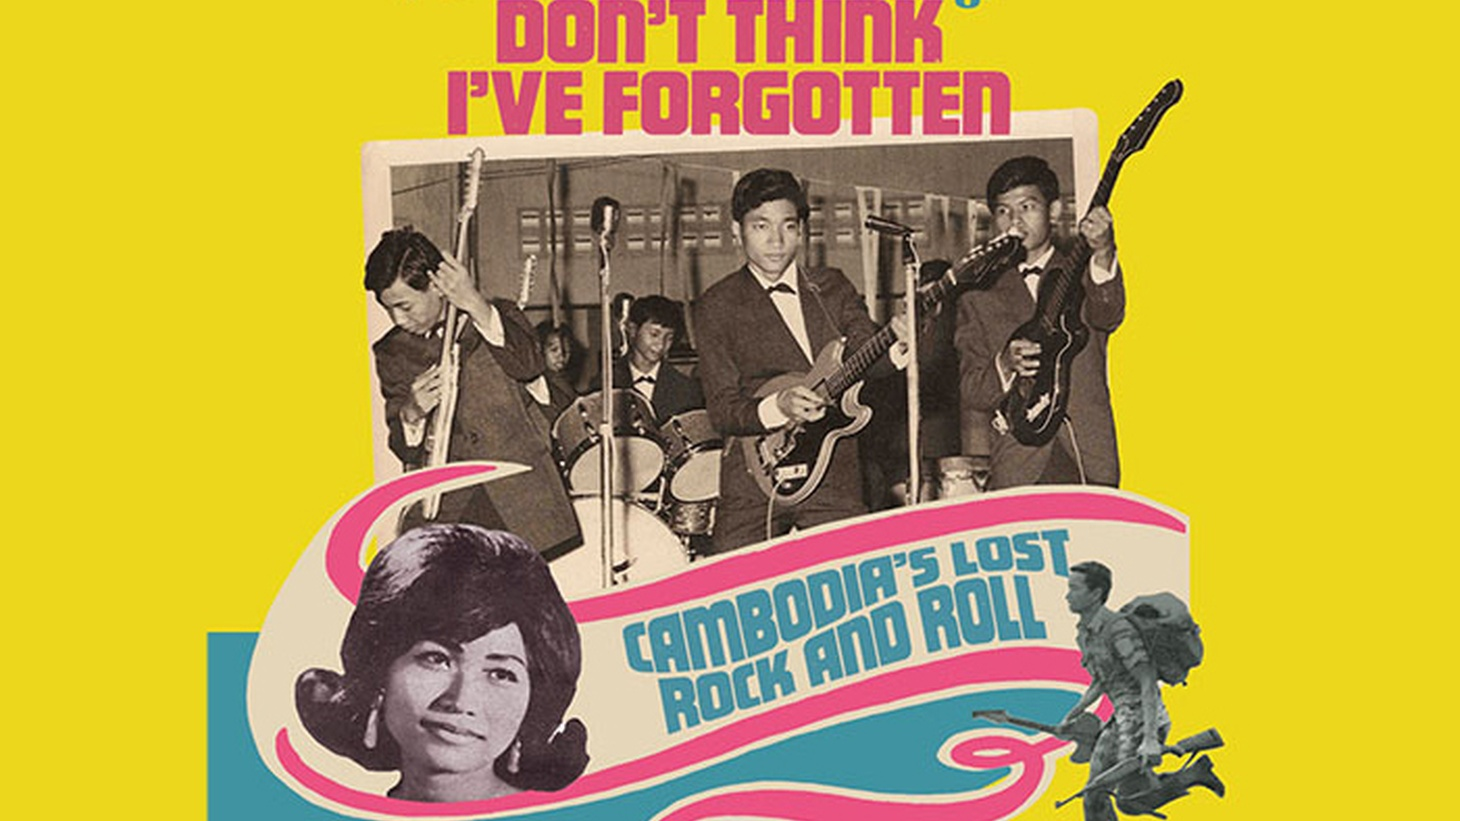 Tom interviews John Pirozzi, director of the powerful new documentary, Don't Think I've Forgotten: Cambodia's Lost Rock & Roll. From the country's 1950s post-independence Belle Époque through the late 1970s Khmer Rouge genocide, discover the vibrant pop/rock music of Cambodia.